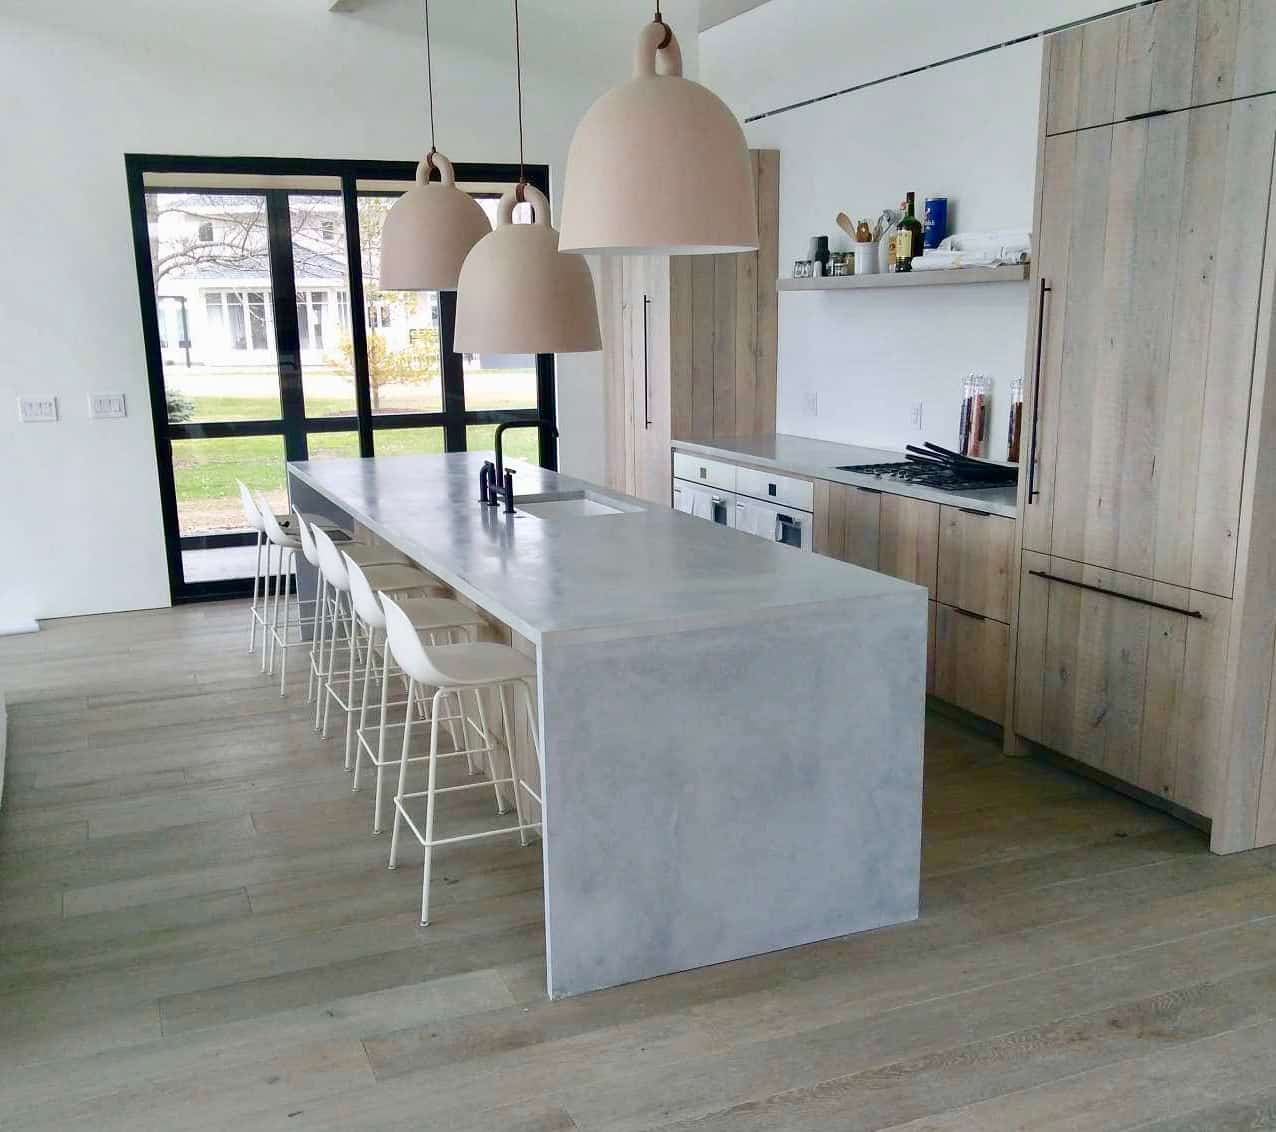 Elastocrete - Limitless Concrete Product - Counter Tops, Floors ...